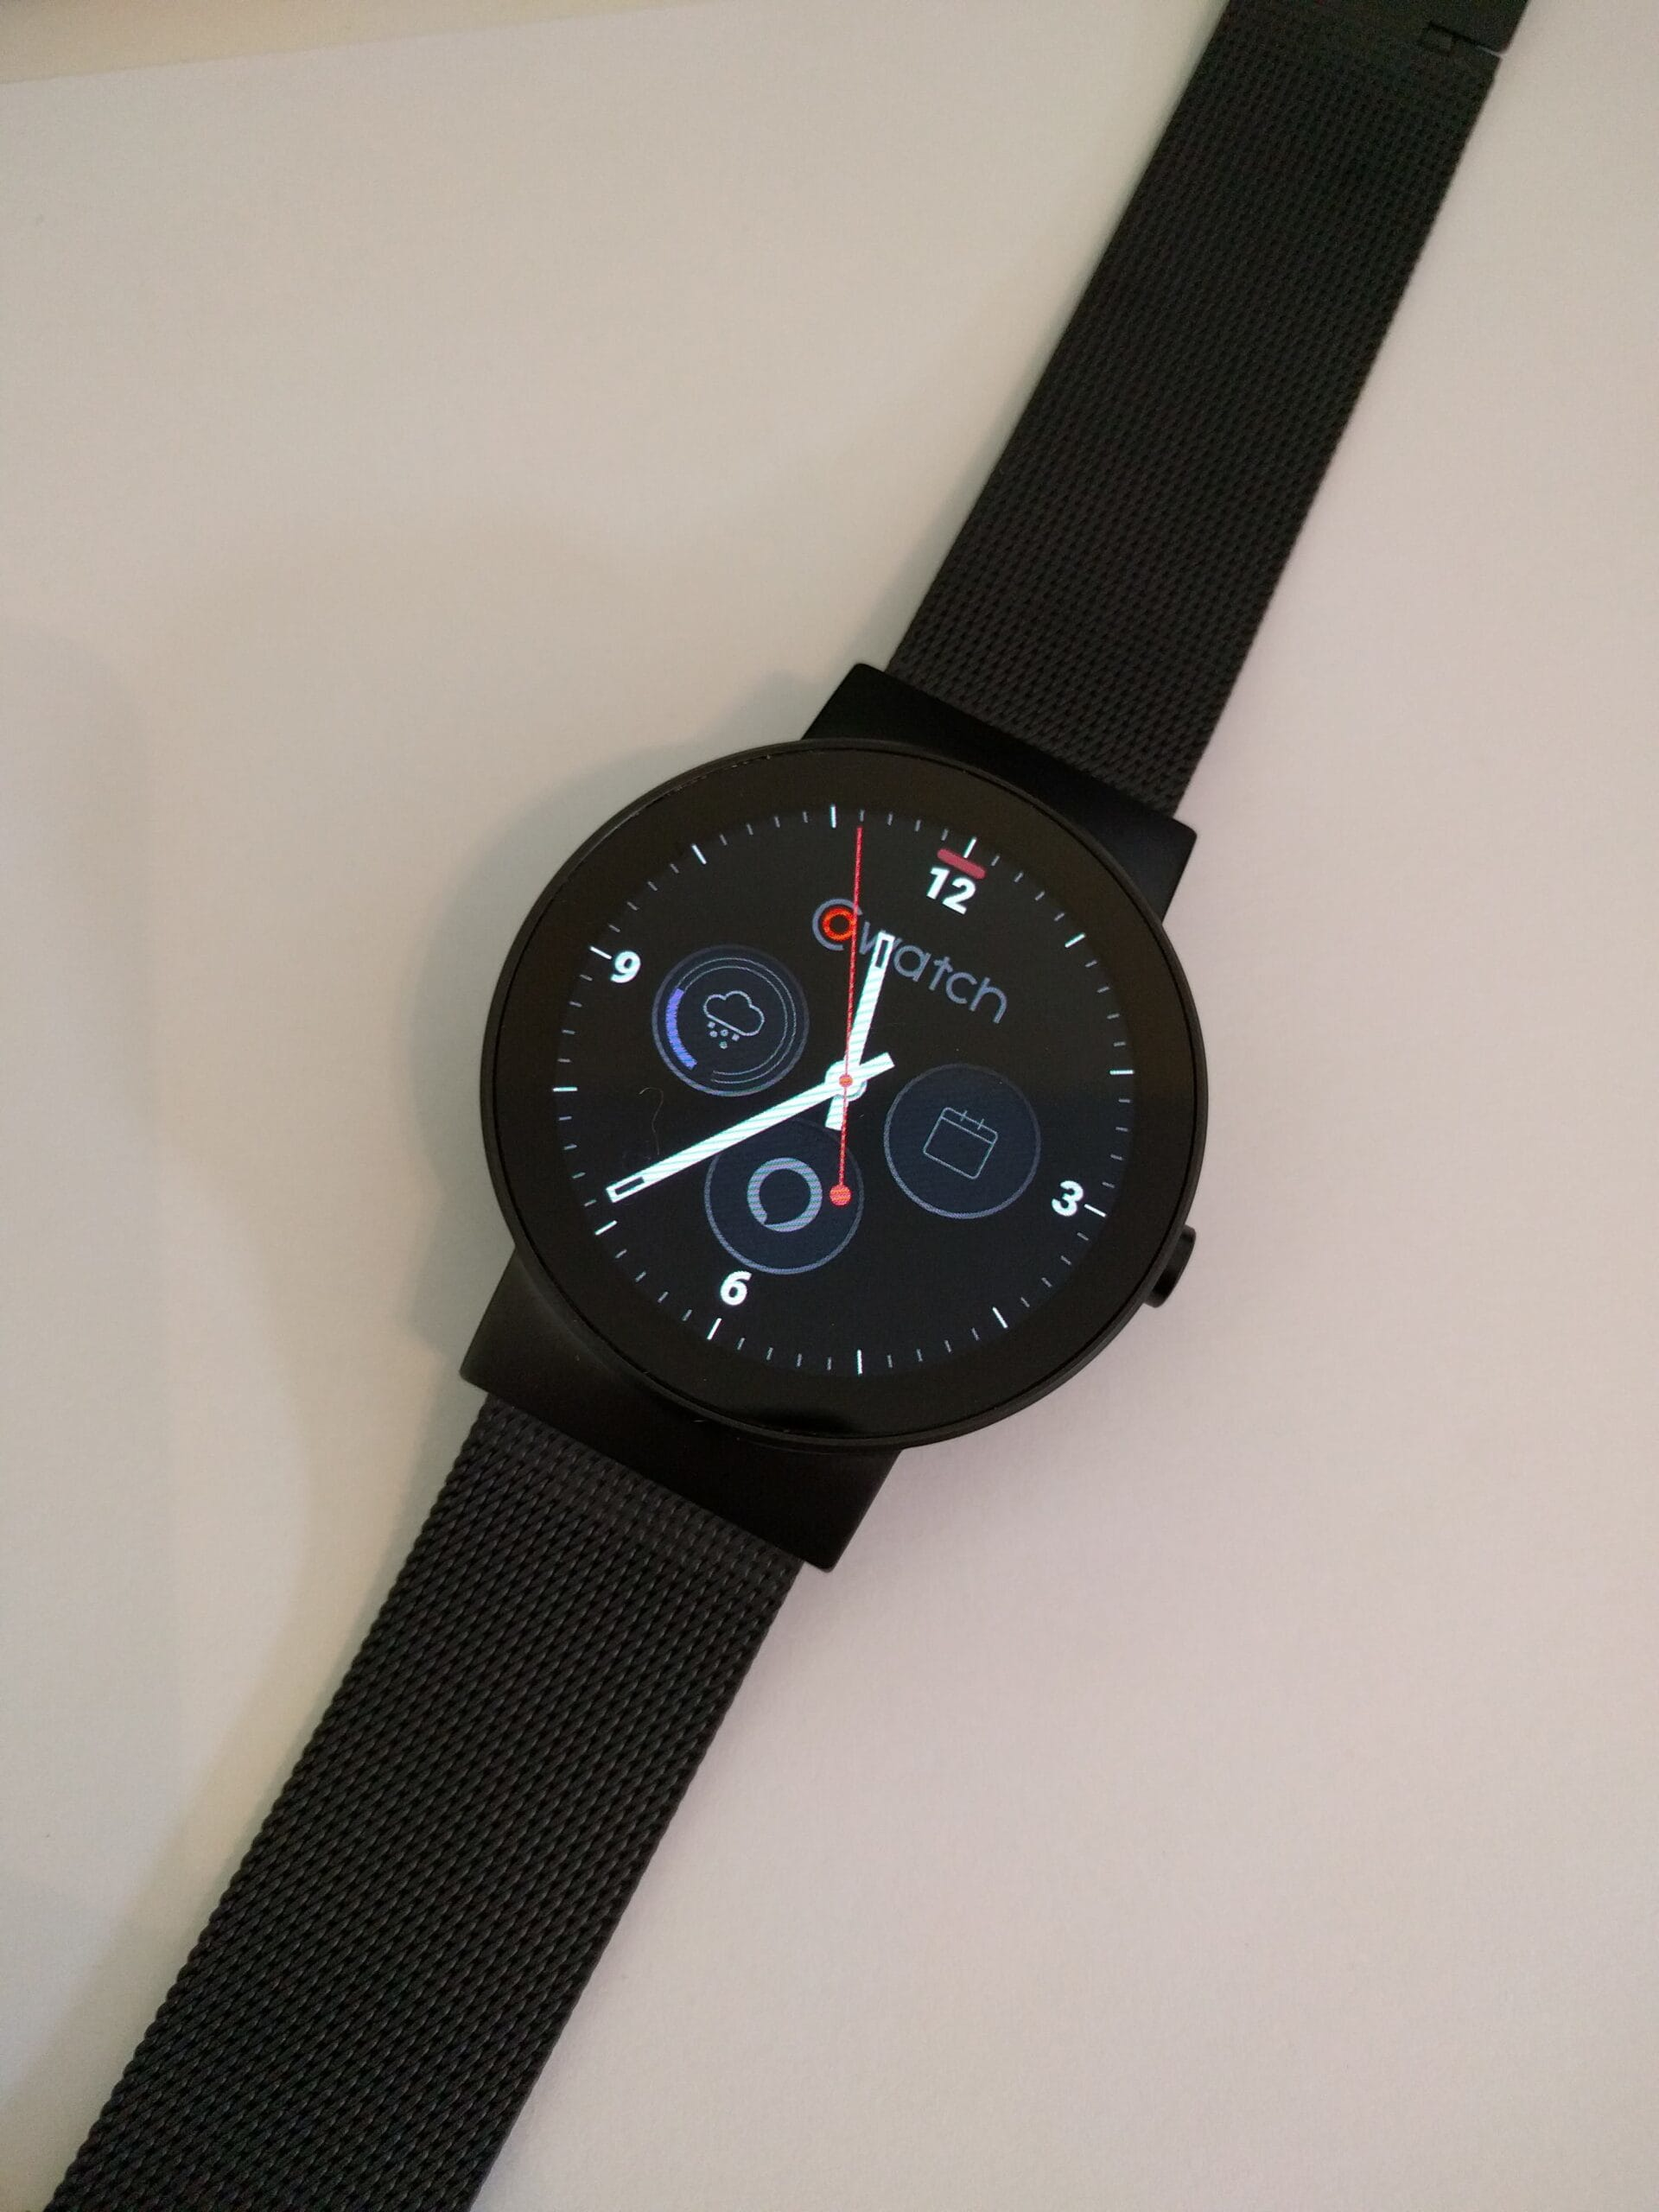 CoWatch Review - Not a Very Smart Watch So We're Giving it Away!